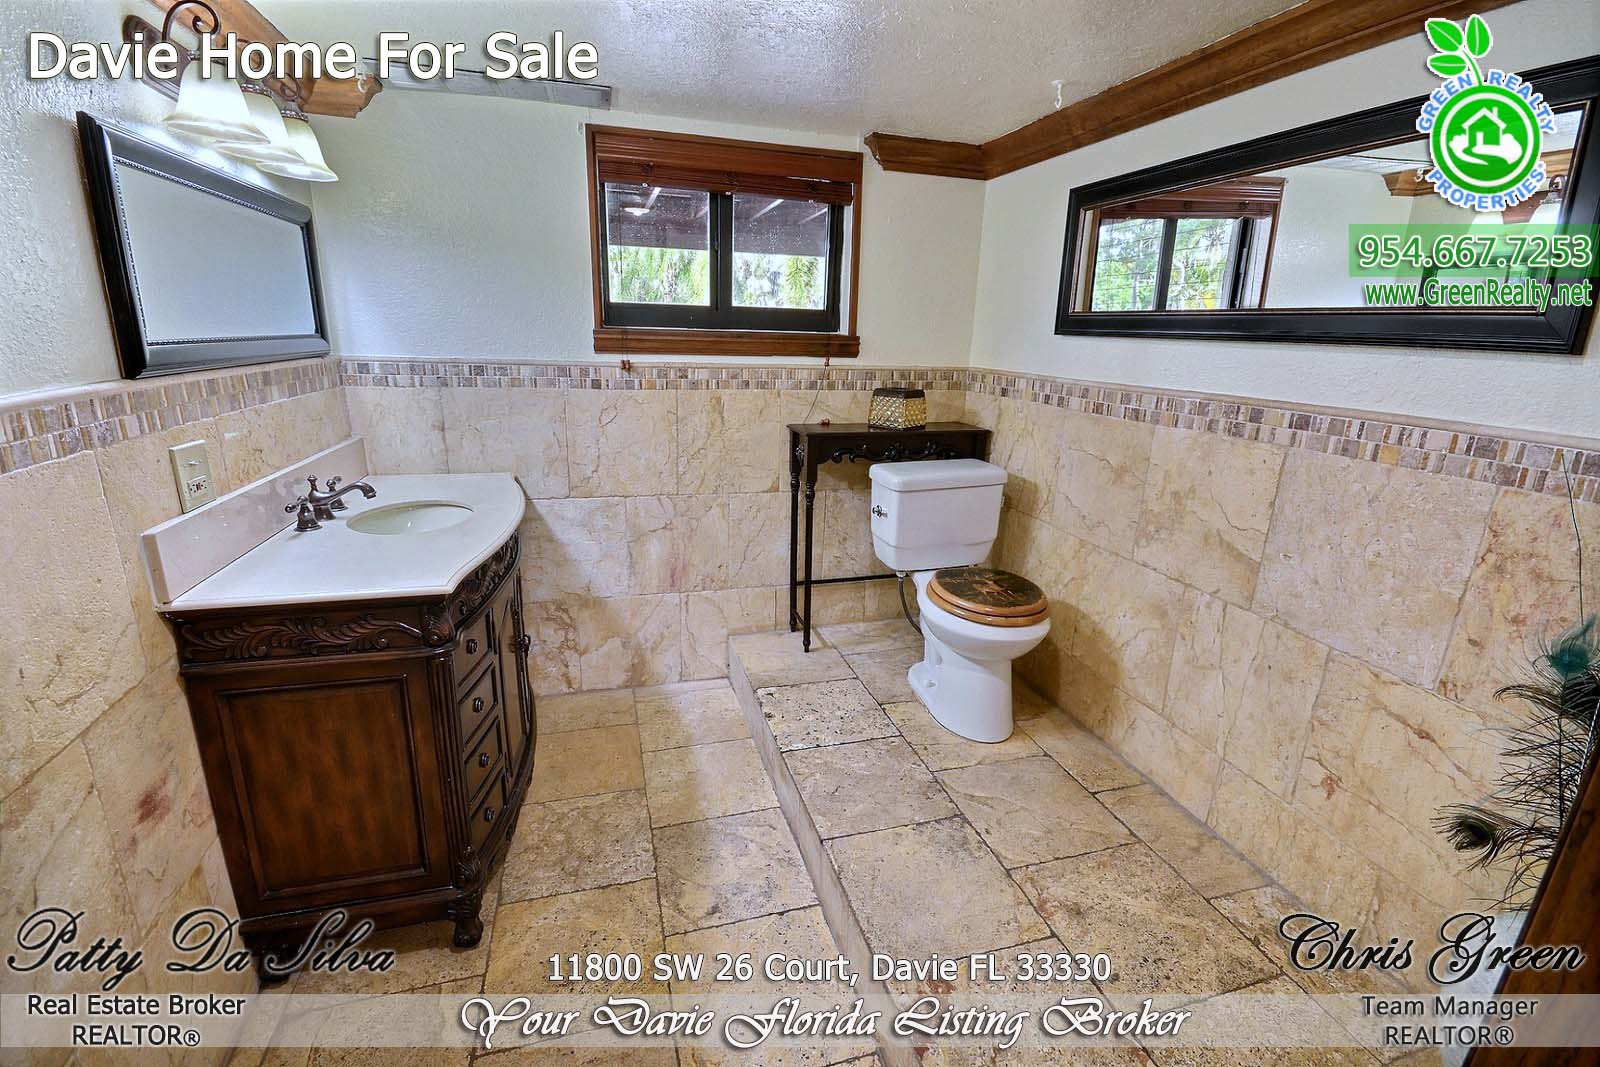 17 Davie Horse Homes For Sale (1)